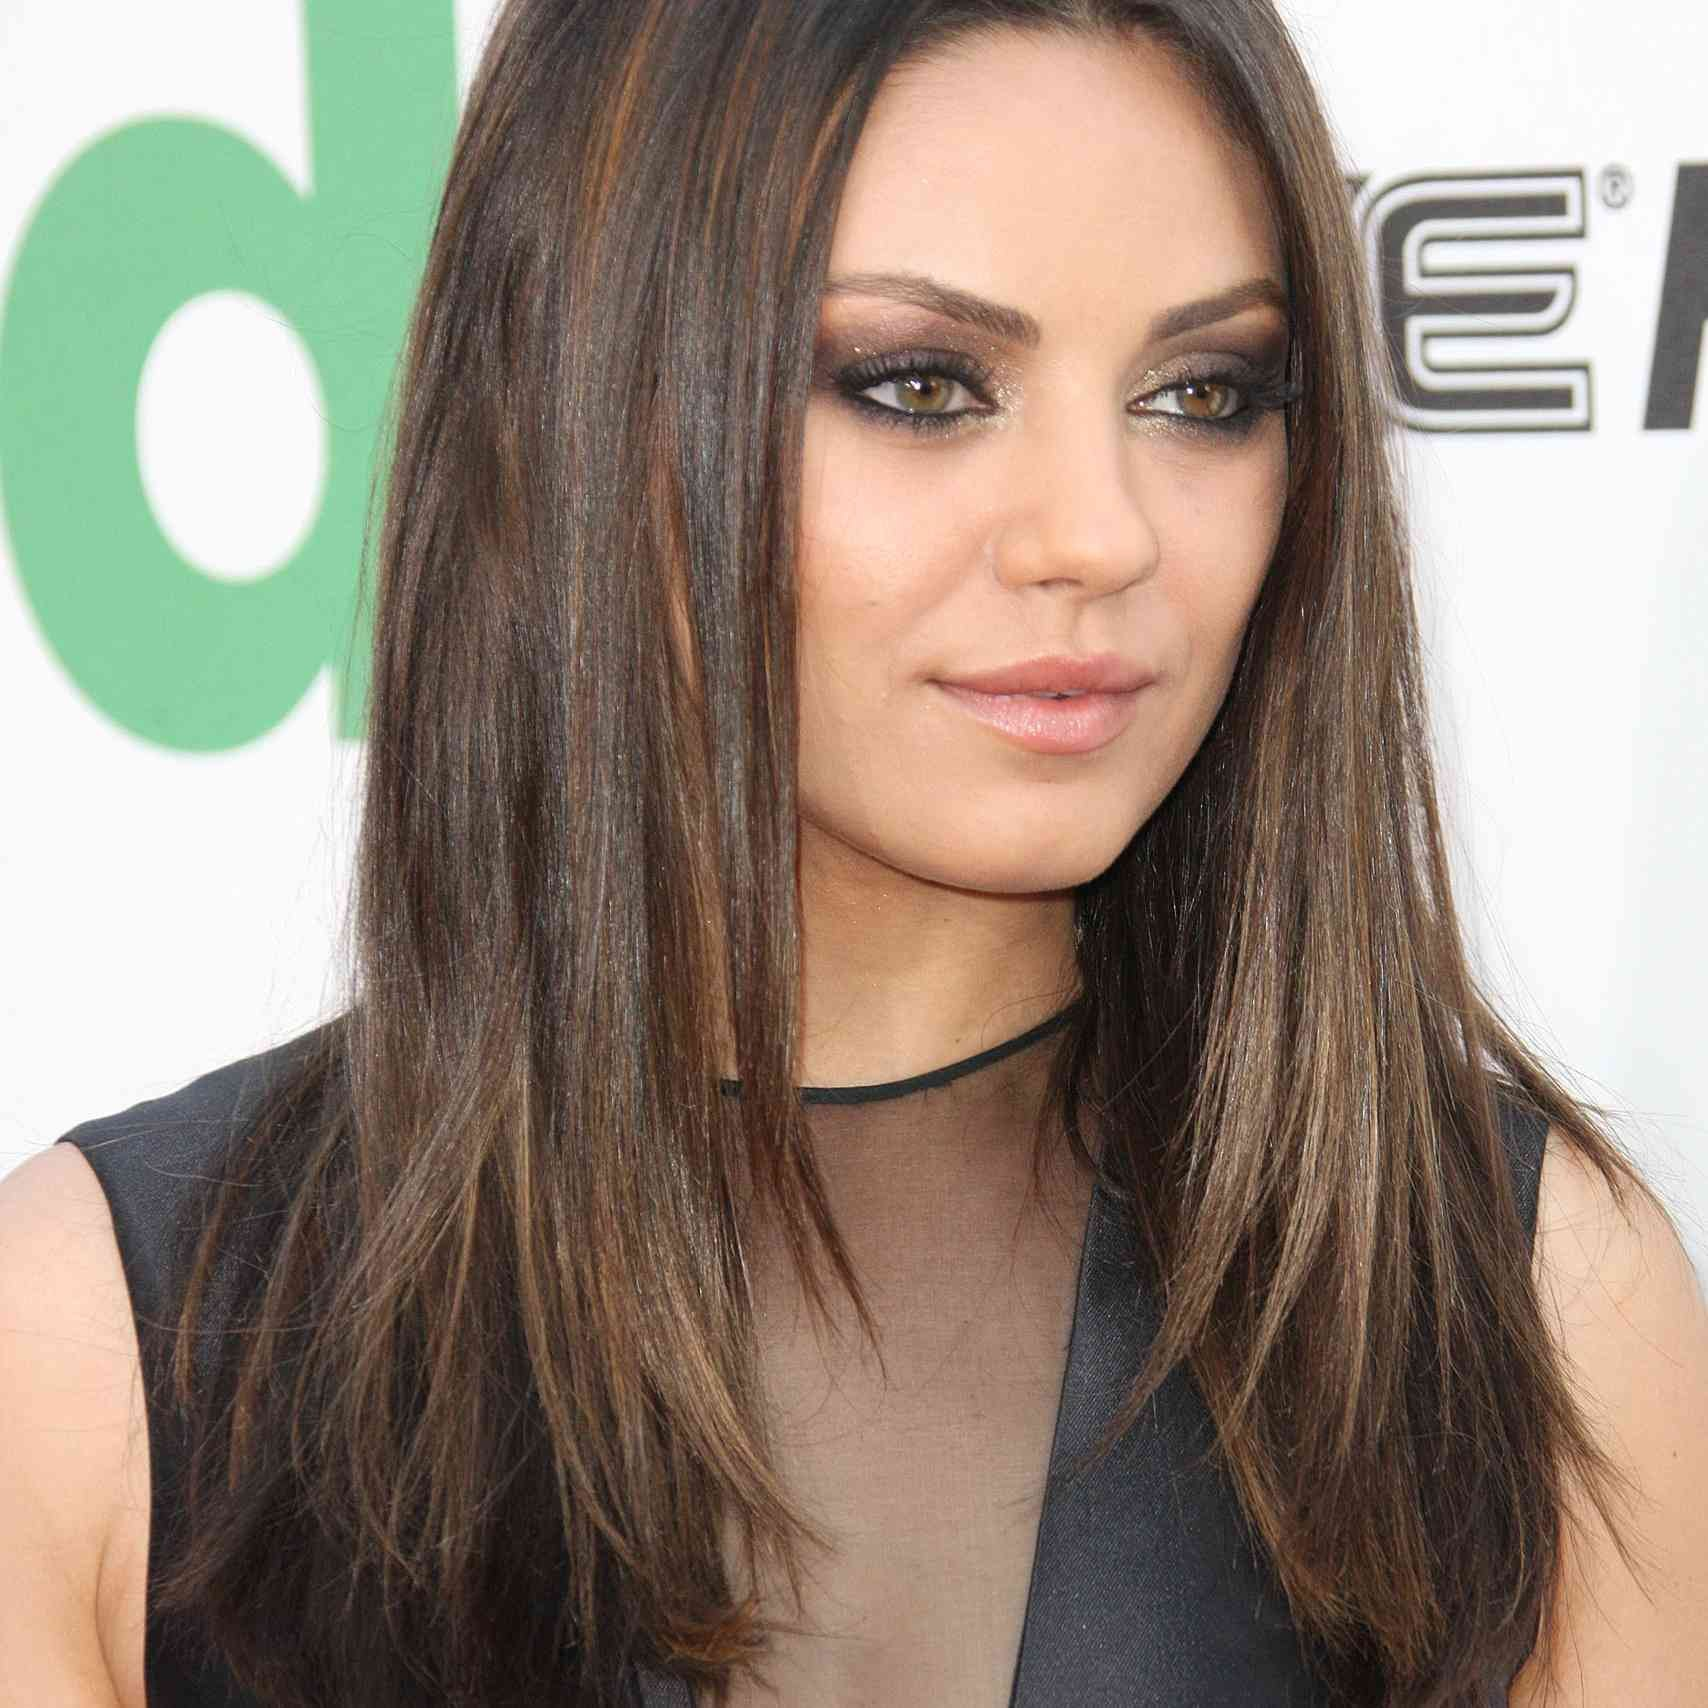 hairstyles for round faces the most flattering cuts